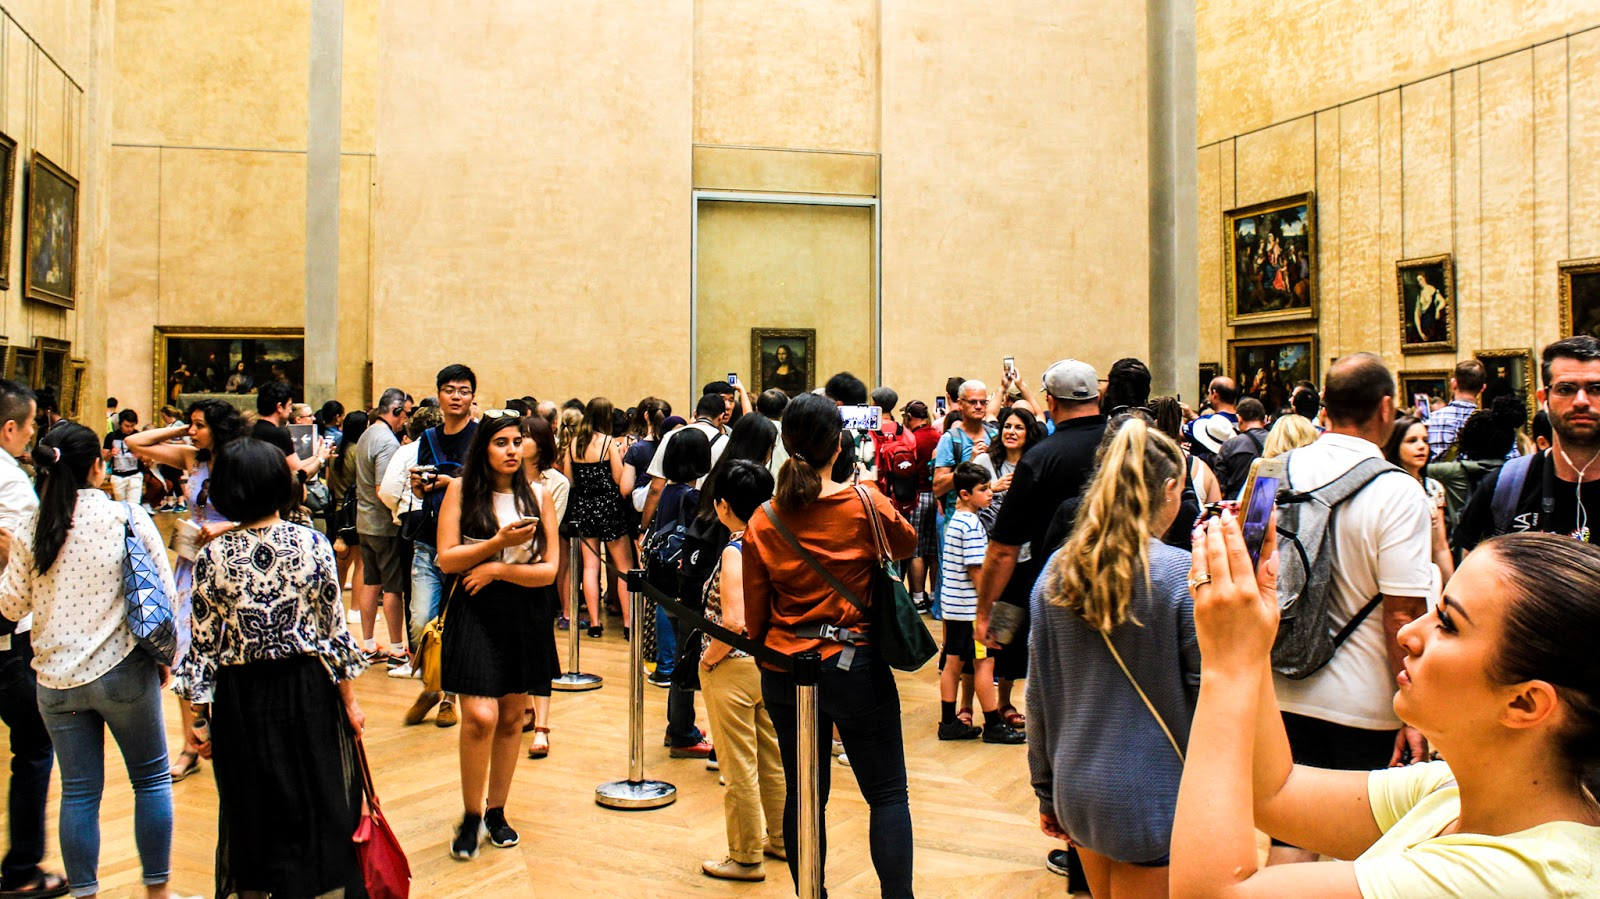 The Louvre: How To Avoid Crowds, Maximize Time Efficiency, And Save Money